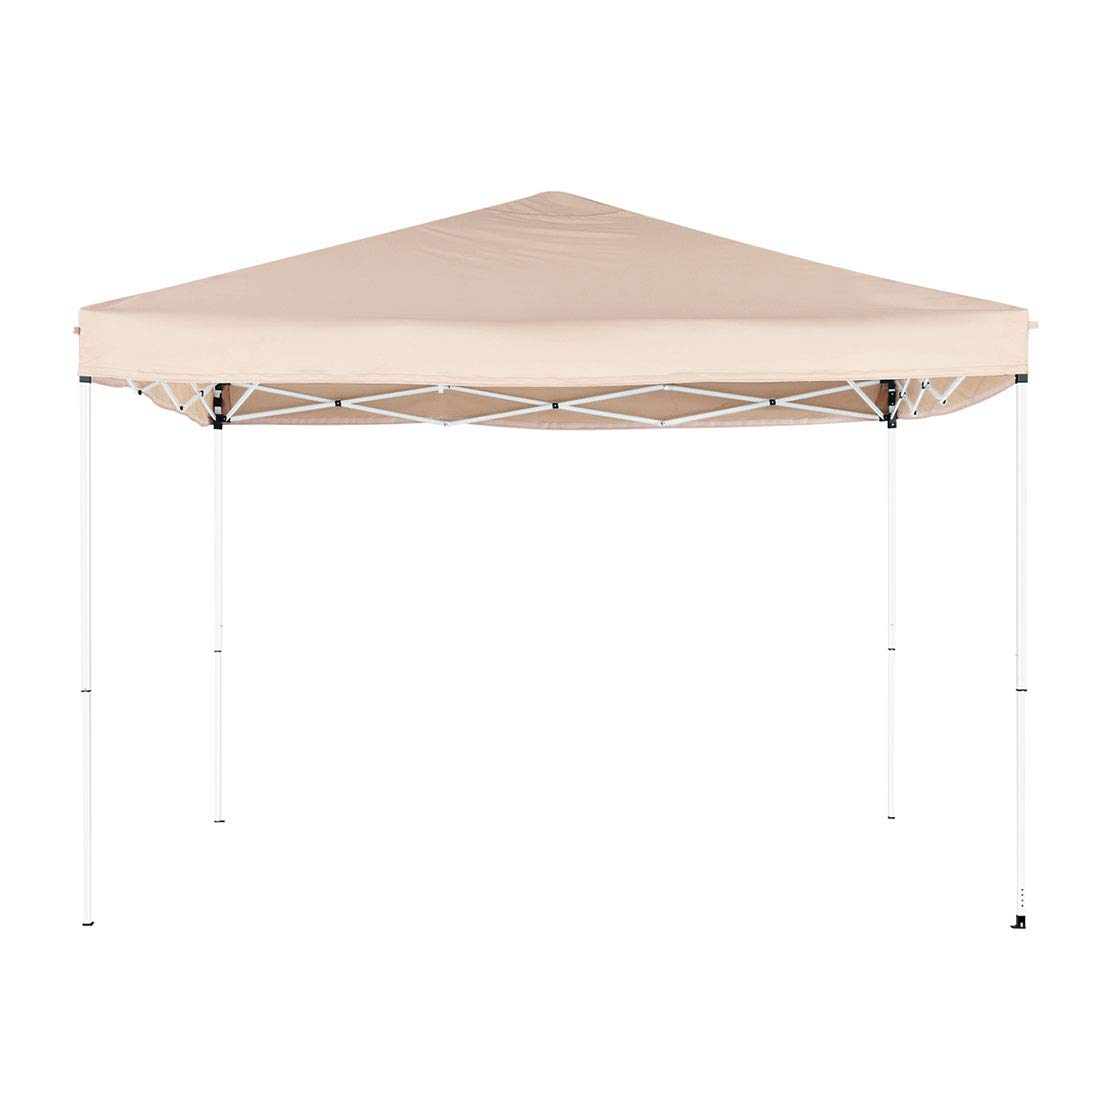 Amazon.com  Quictent 6.6x6.6 Ez Pop up Canopy with Netting Small Screen House Tent Mesh Side Wall Tan  Garden u0026 Outdoor  sc 1 st  Amazon.com & Amazon.com : Quictent 6.6x6.6 Ez Pop up Canopy with Netting Small ...